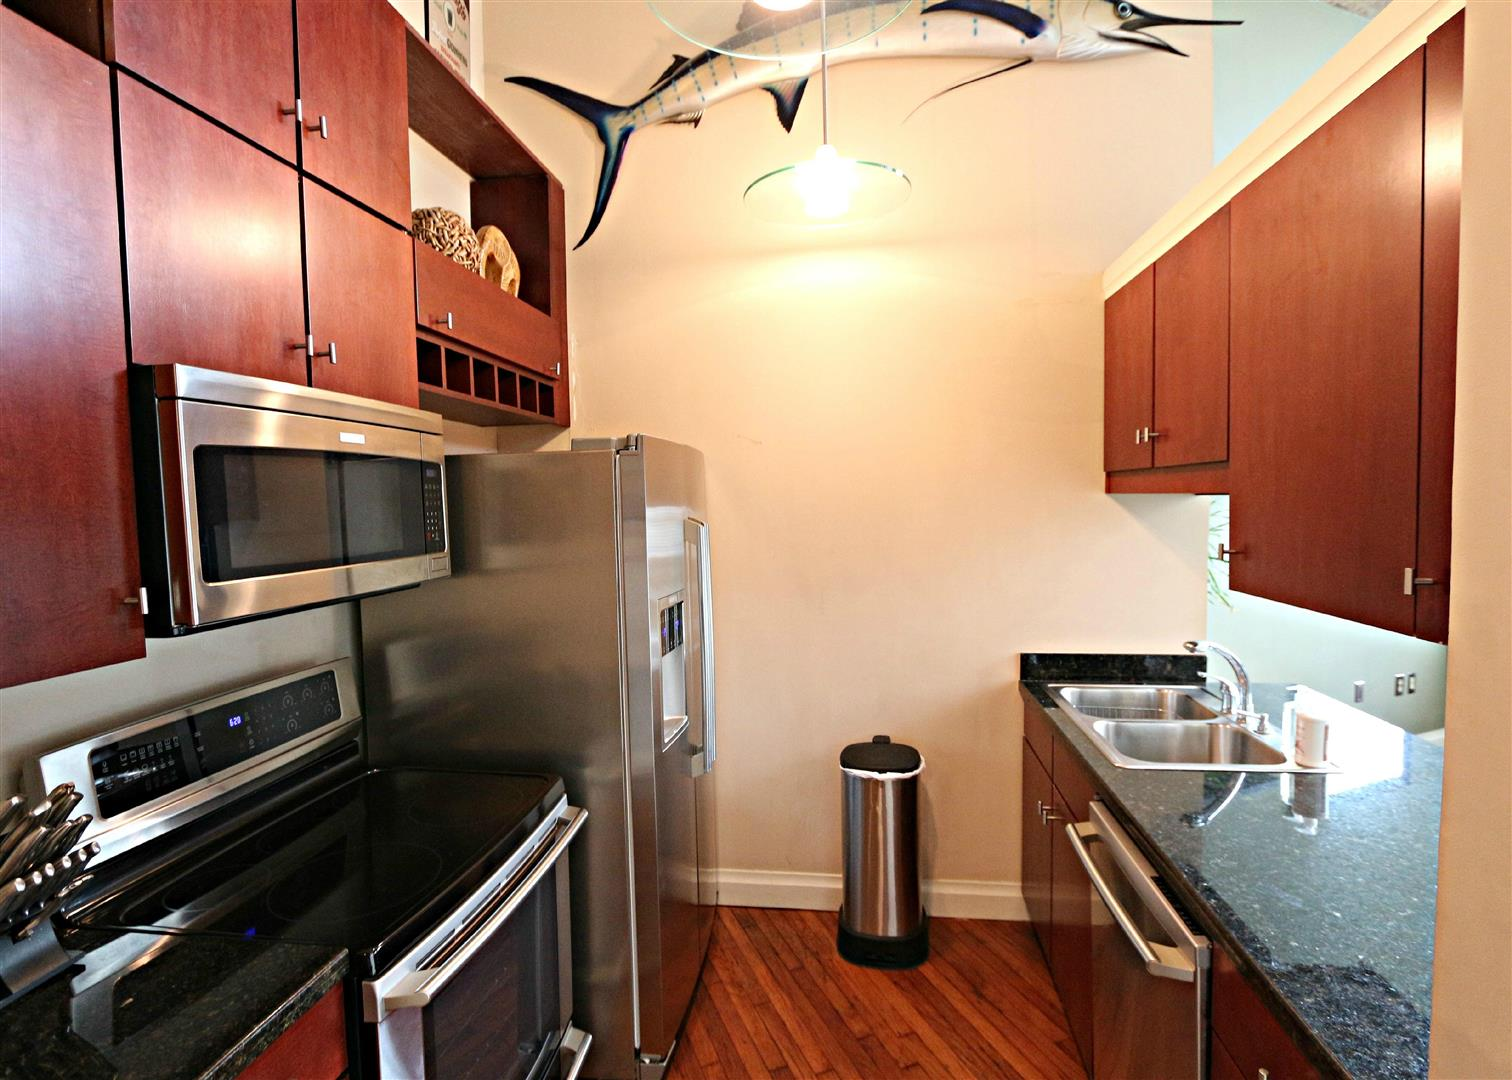 920Poeyfarre289,CottonMillCondos,kitchen.jpg